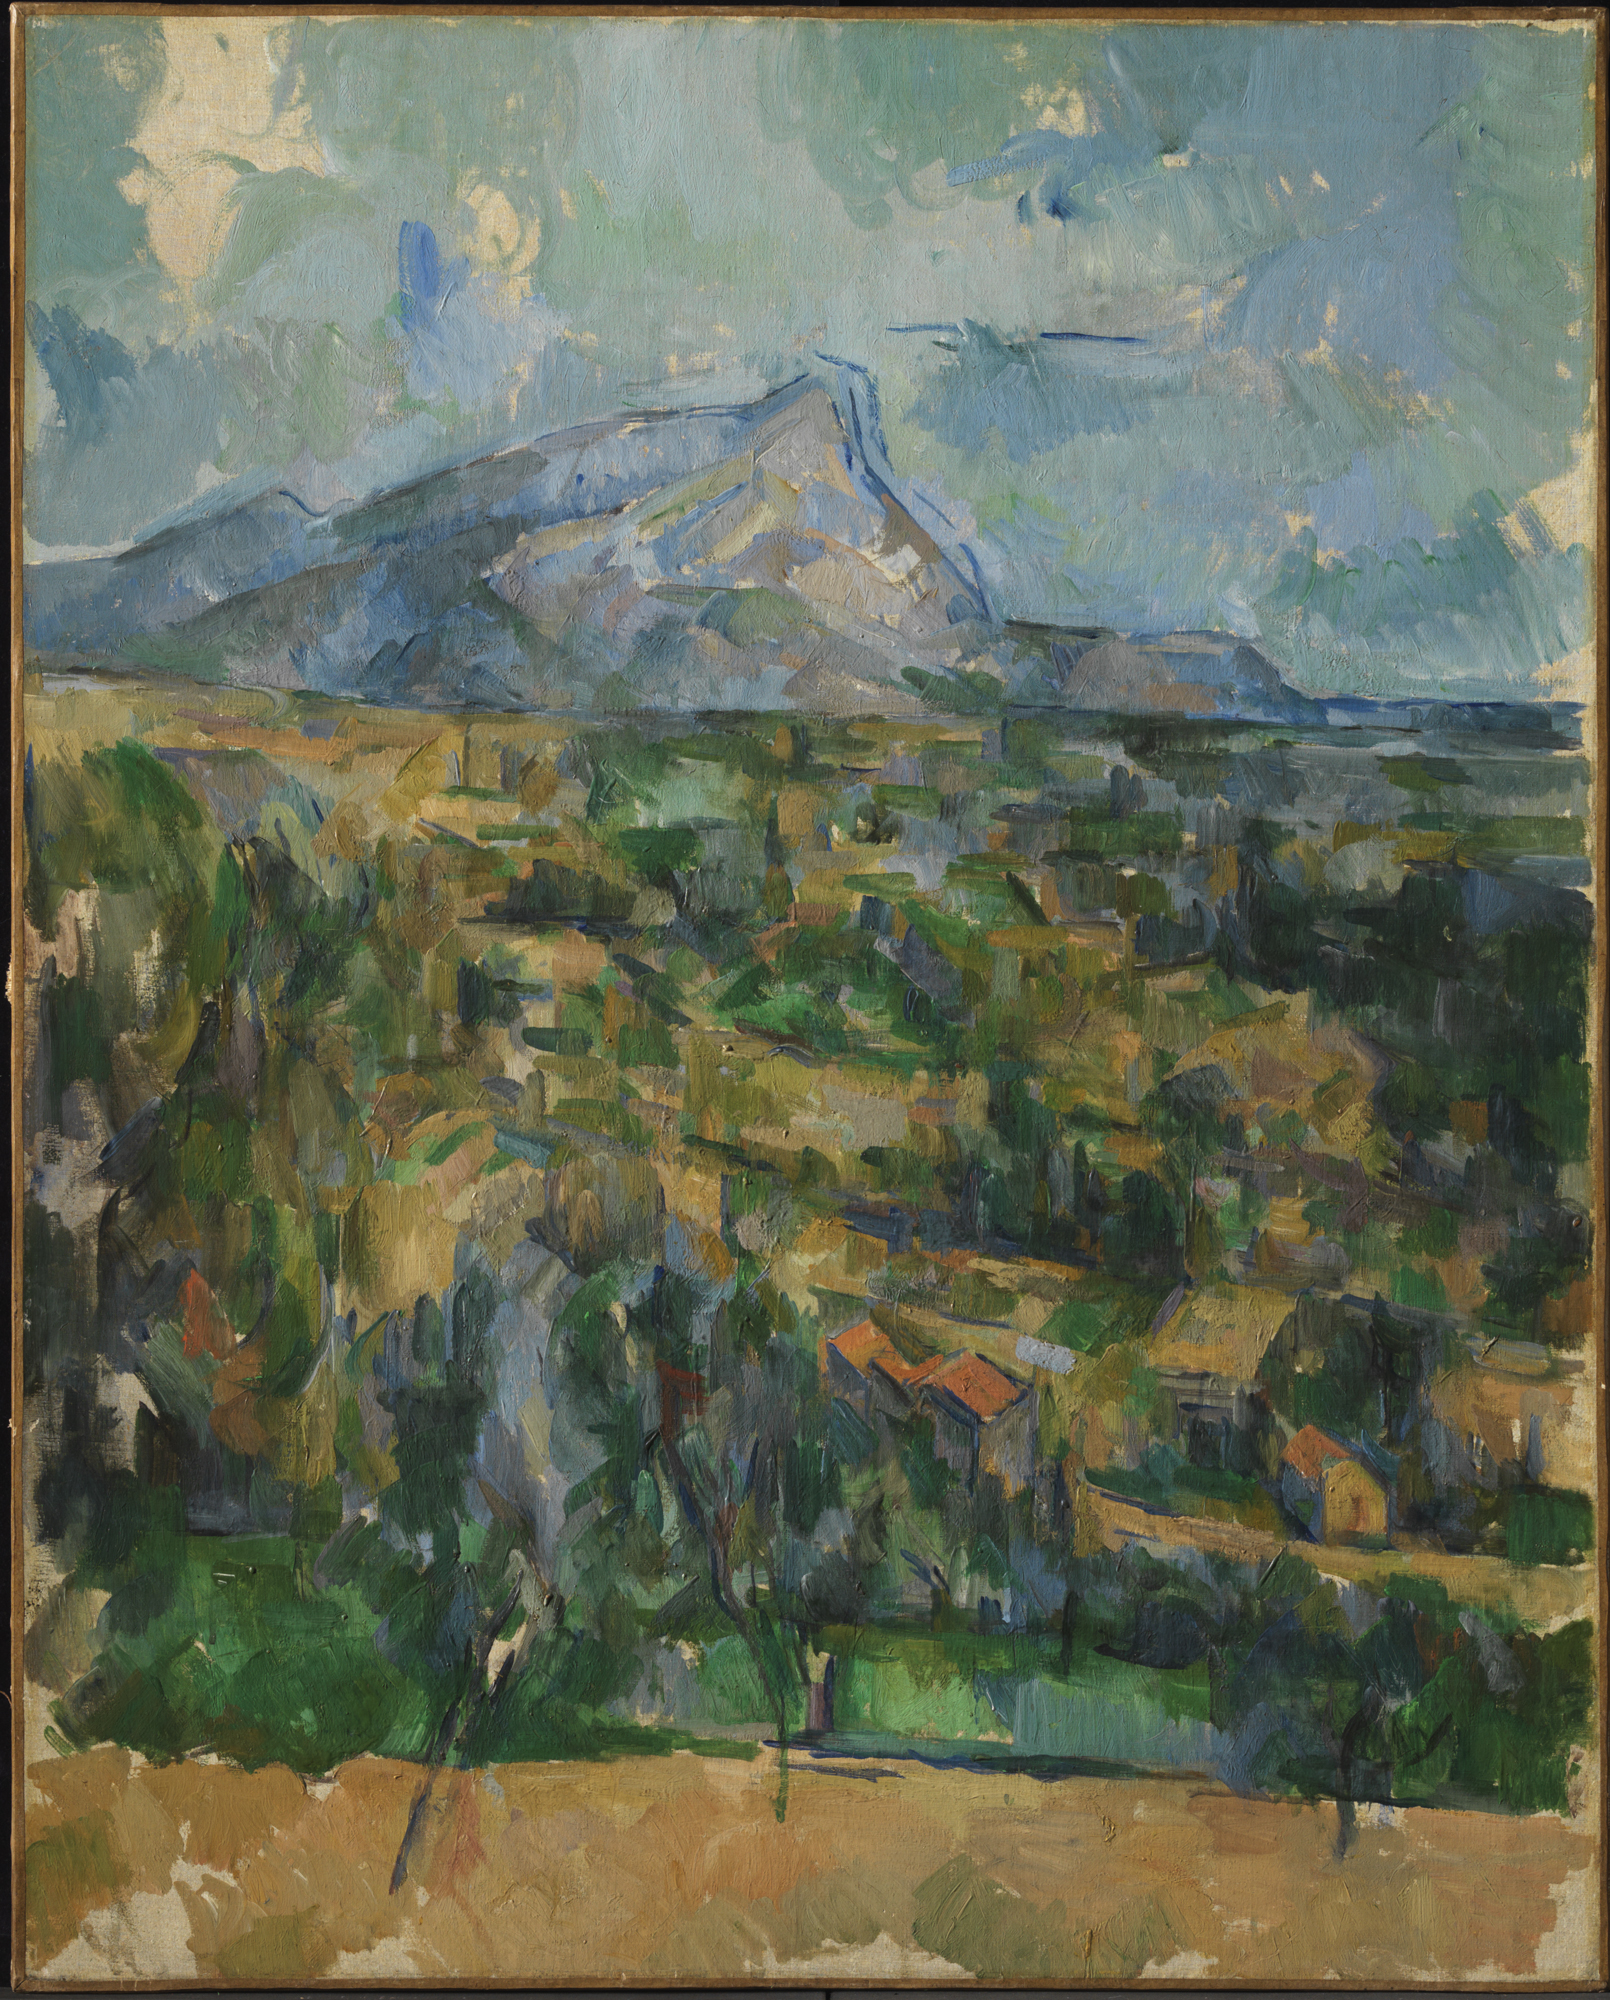 Paul Cézanne, French, 1839–1906 Mont Sainte-Victoire (La Montagne Sainte-Victoire), ca. 1904–06. Oil on canvas. 83.8 x 65.1 cm. (33 x 25 5/8 in.) frame: 102.5 x 86 x 6.0 cm (40 3/8 x 33 7/8 x 2 3/8 in.) The Henry and Rose Pearlman Foundation, on long-term loan to the Princeton University Art Museum